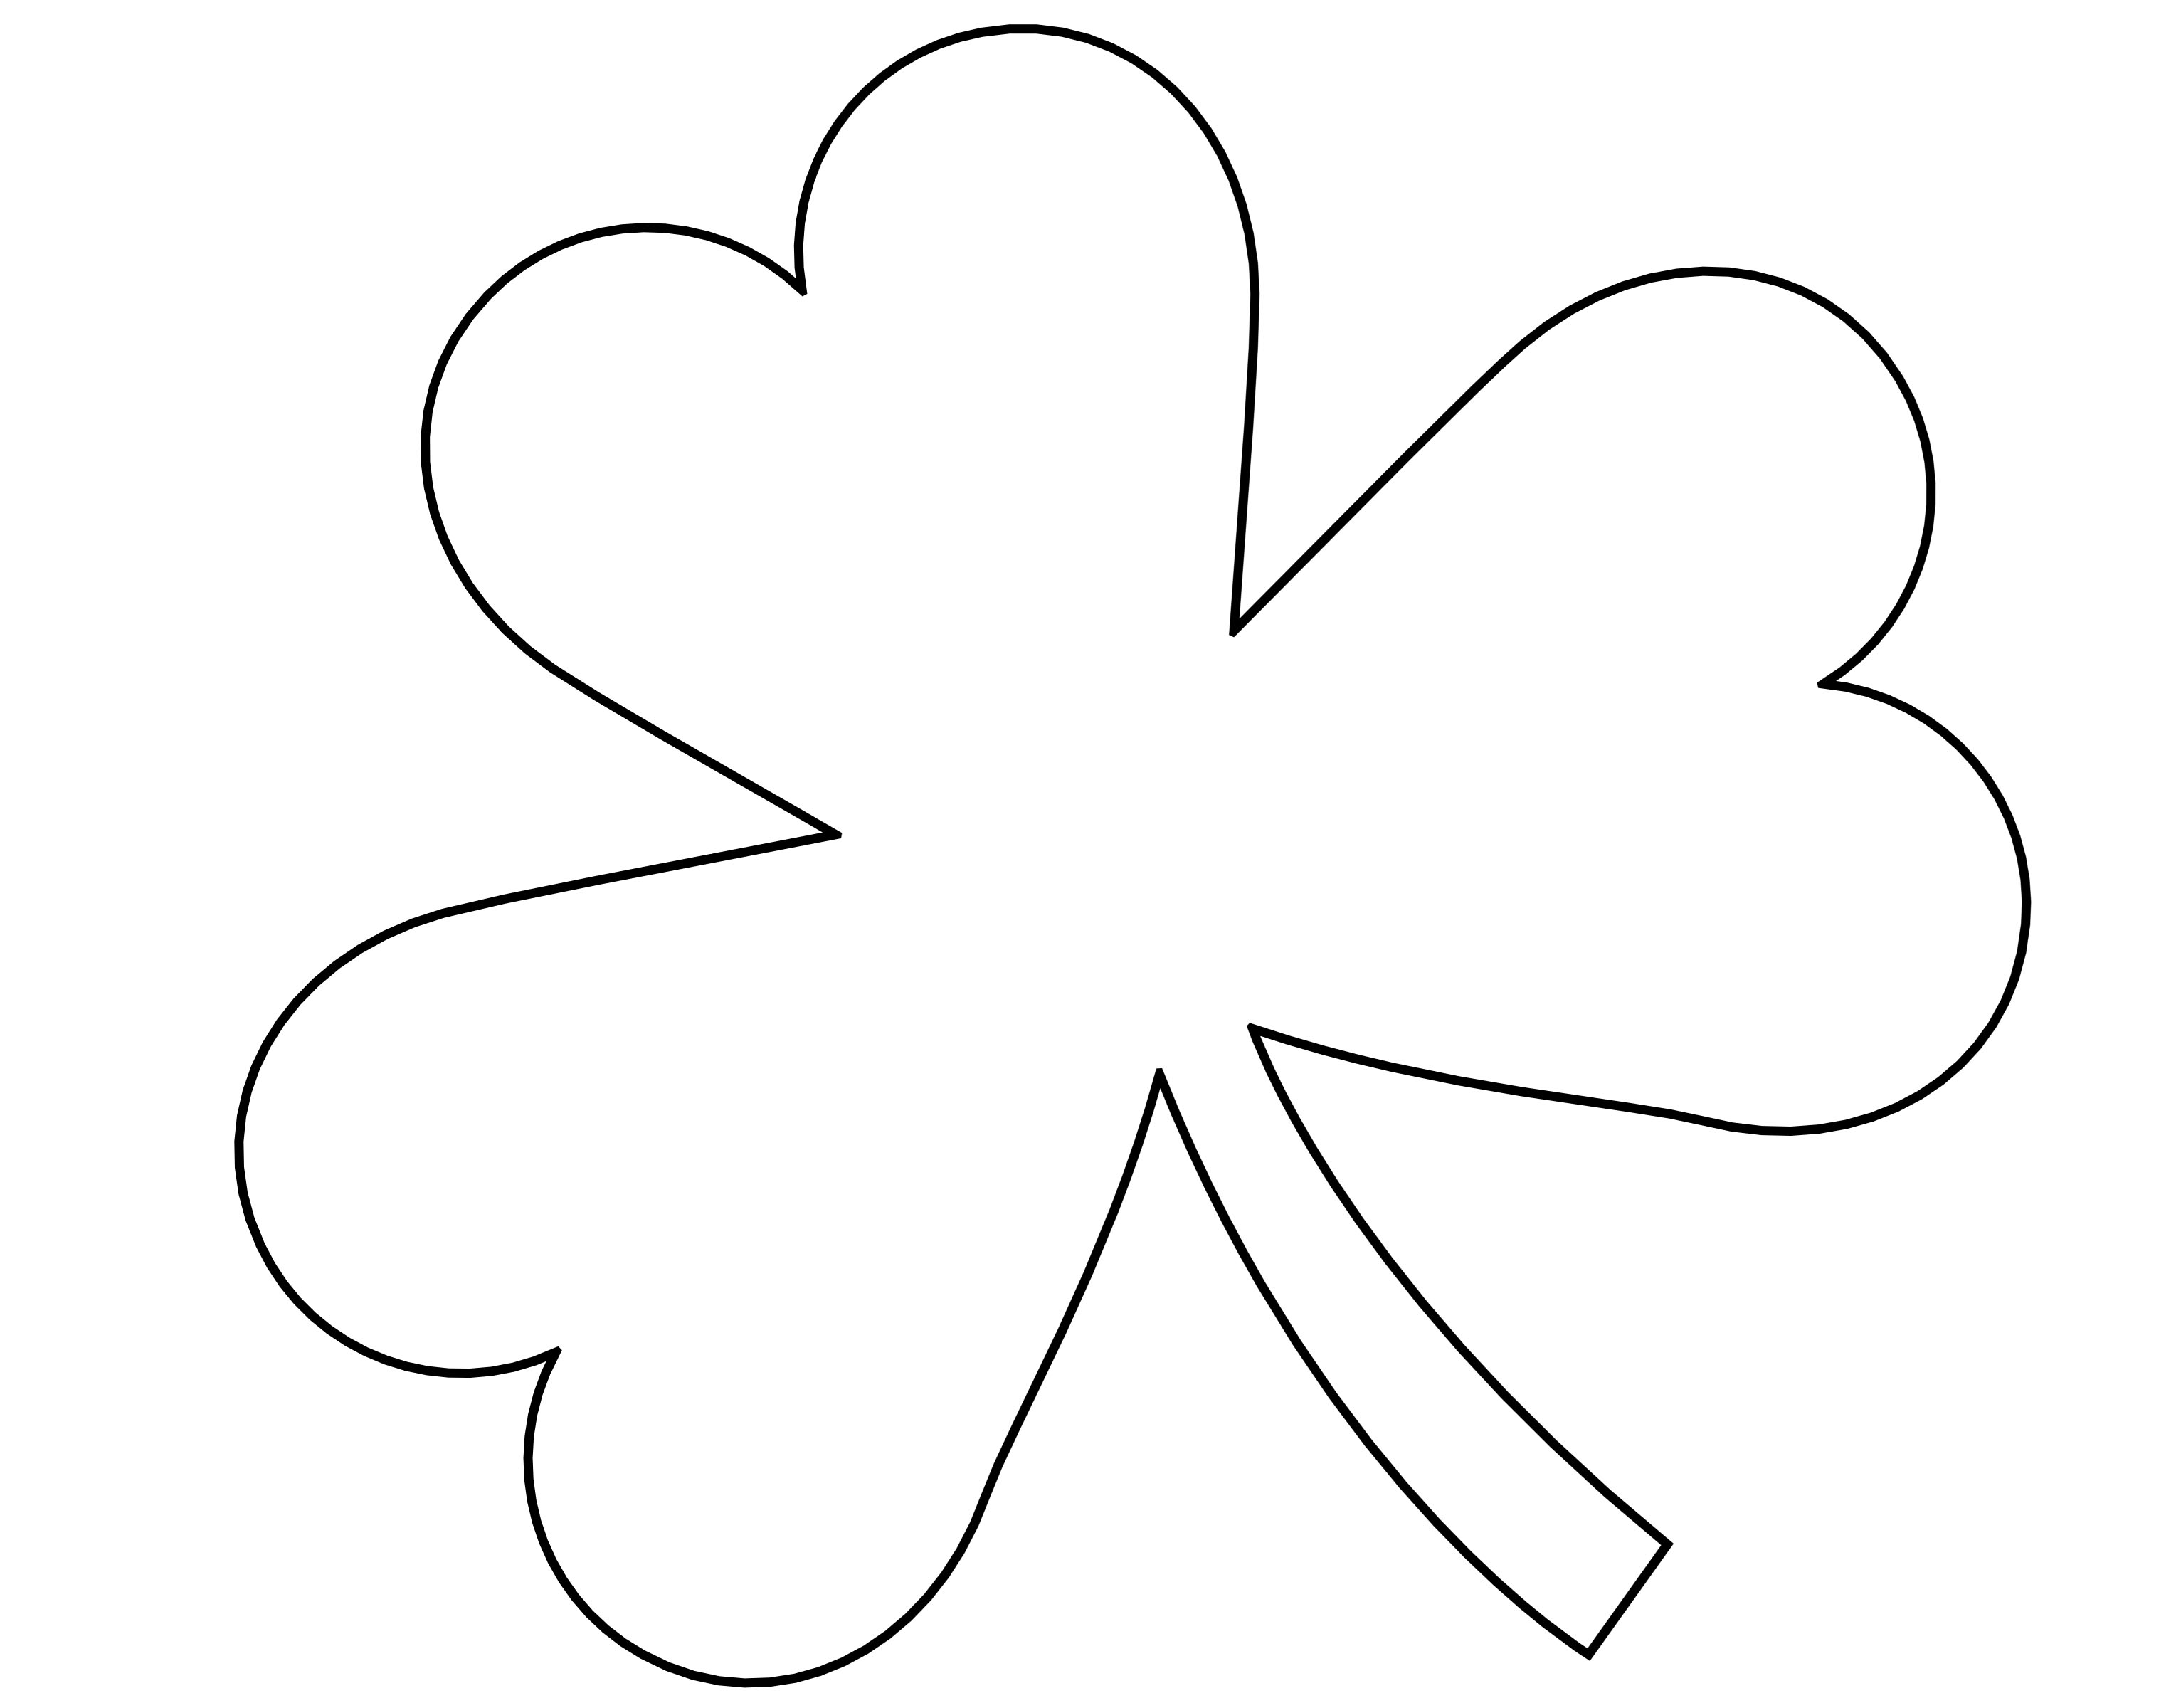 printable clover free four leaf clover picture download free clip art clover printable